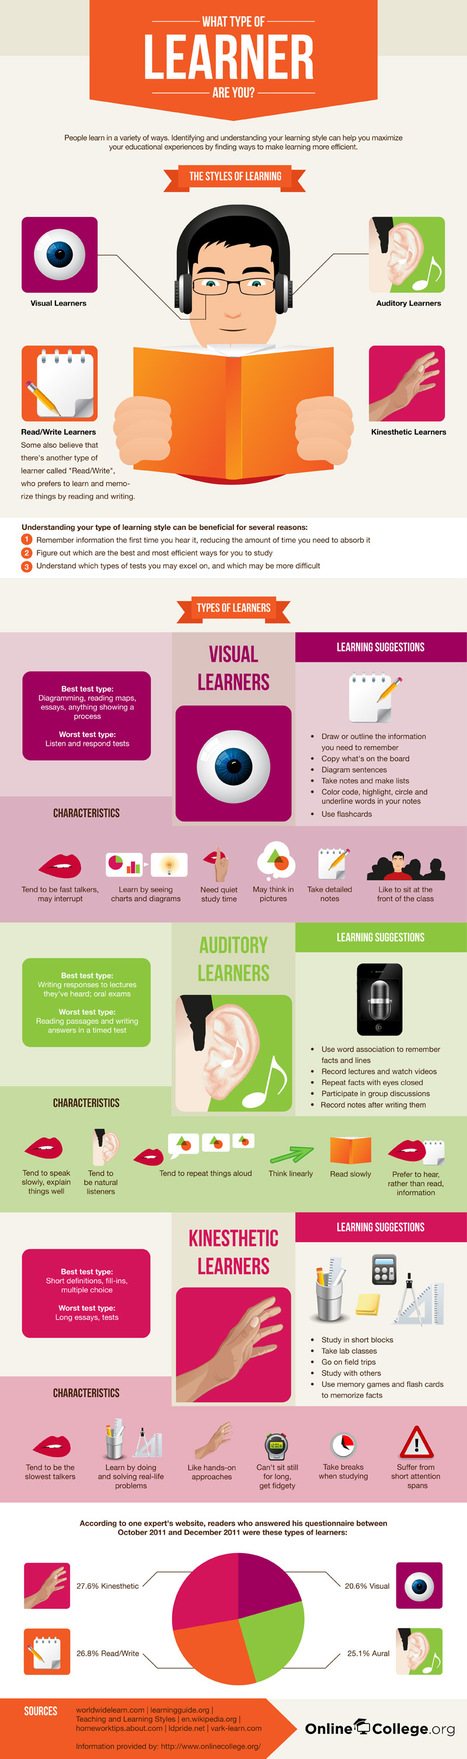 What Type of Learner Are You? [Infographic] | Self-determined learning in the 21st Century | Scoop.it